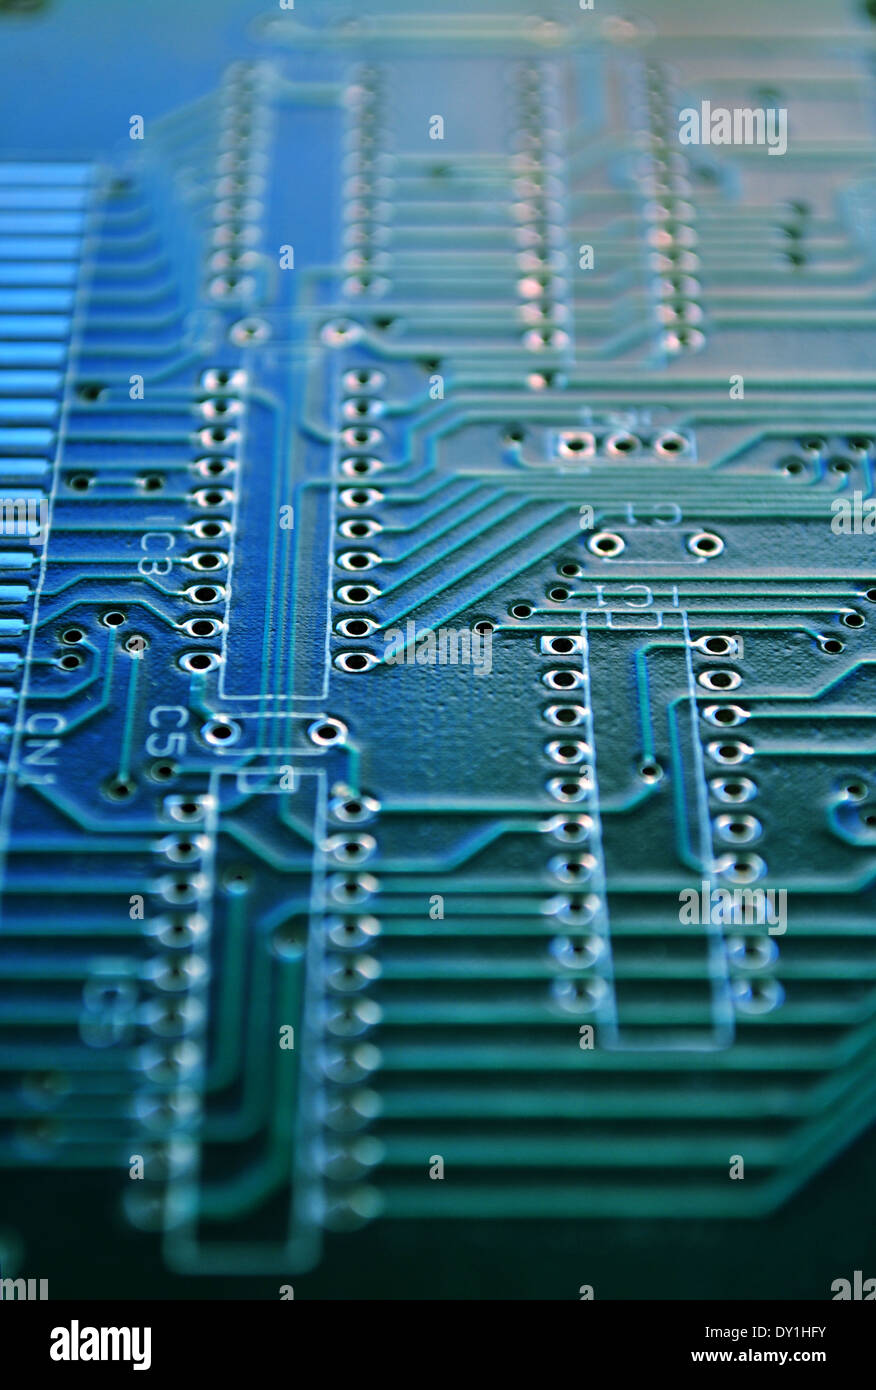 Microprocessor Chip Silicon Stock Photos Electronic Integrated Circuit Royalty Free Image Detail Of Board With